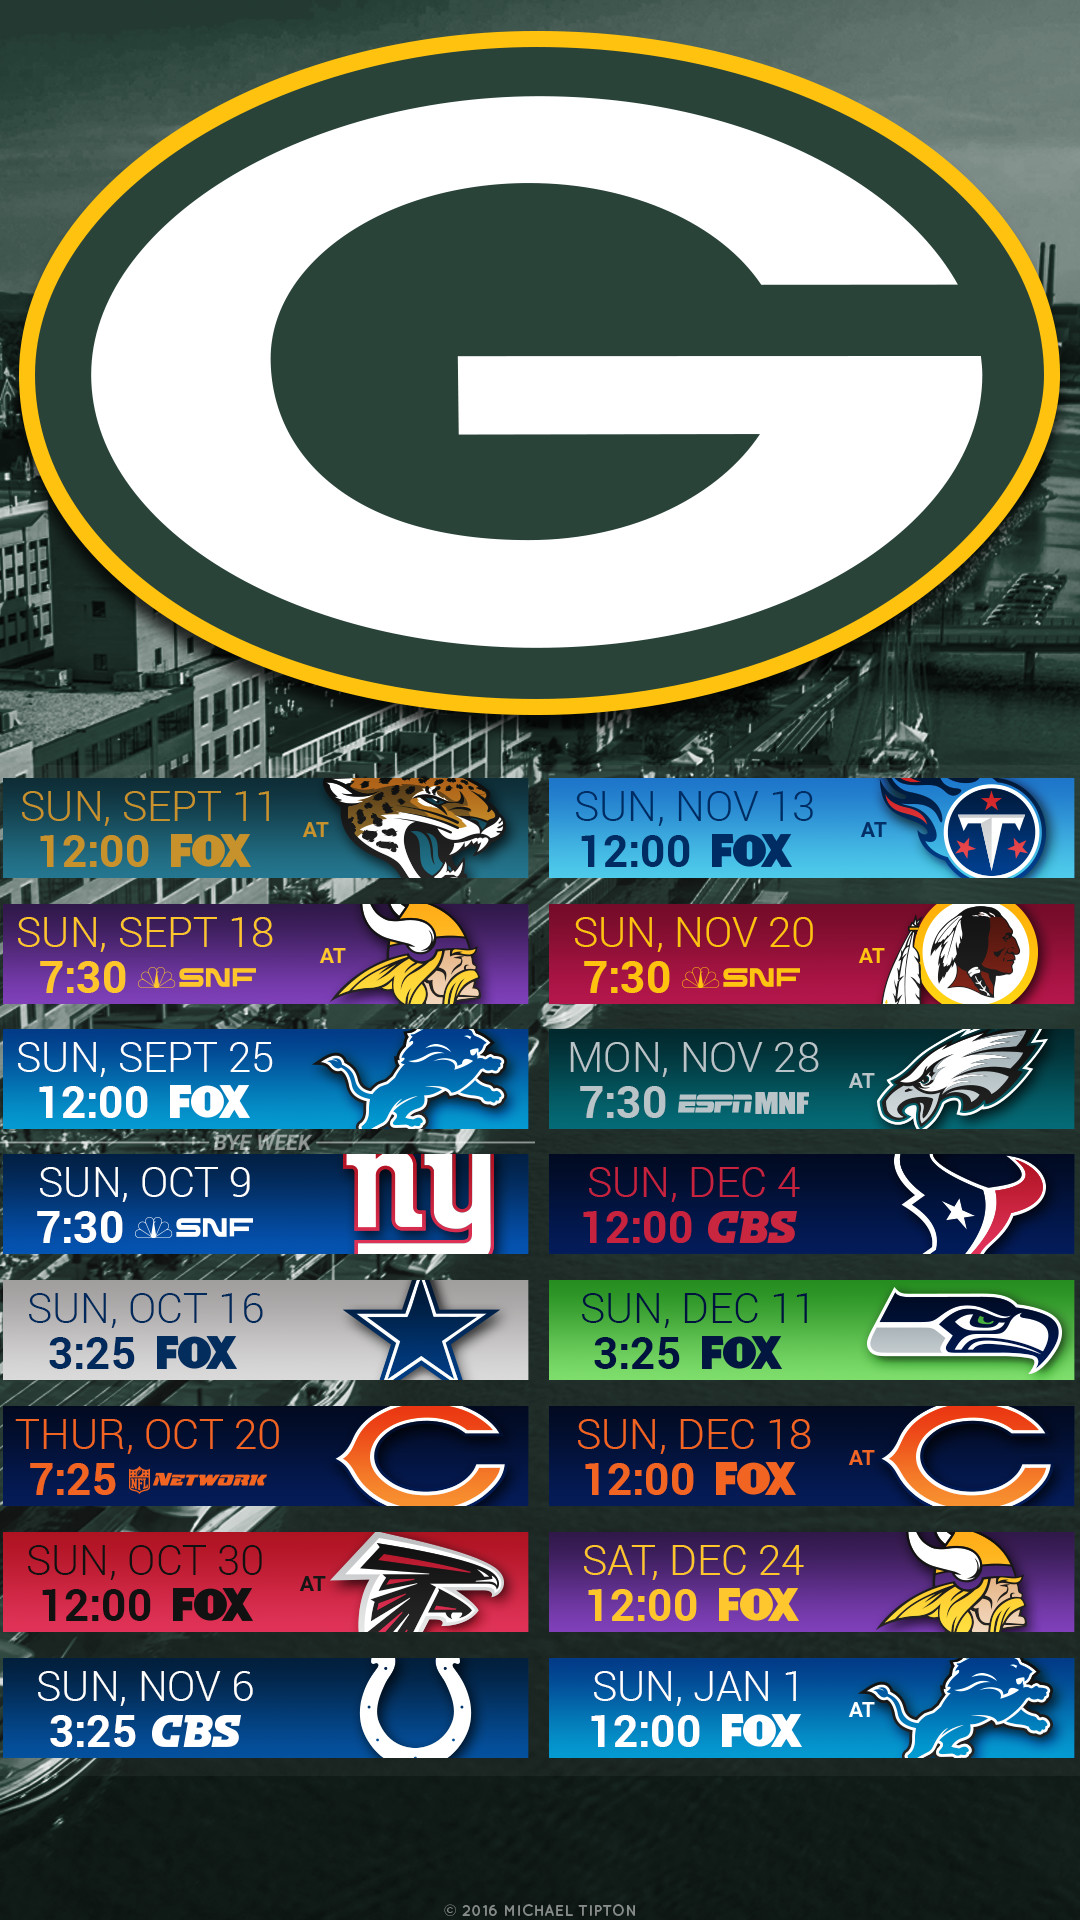 The Highest Quality Green Bay Packers Football Schedule Wallpapers and Logo  Backgrounds for iPhone, Andriod, Galaxy, and Desktop PC.